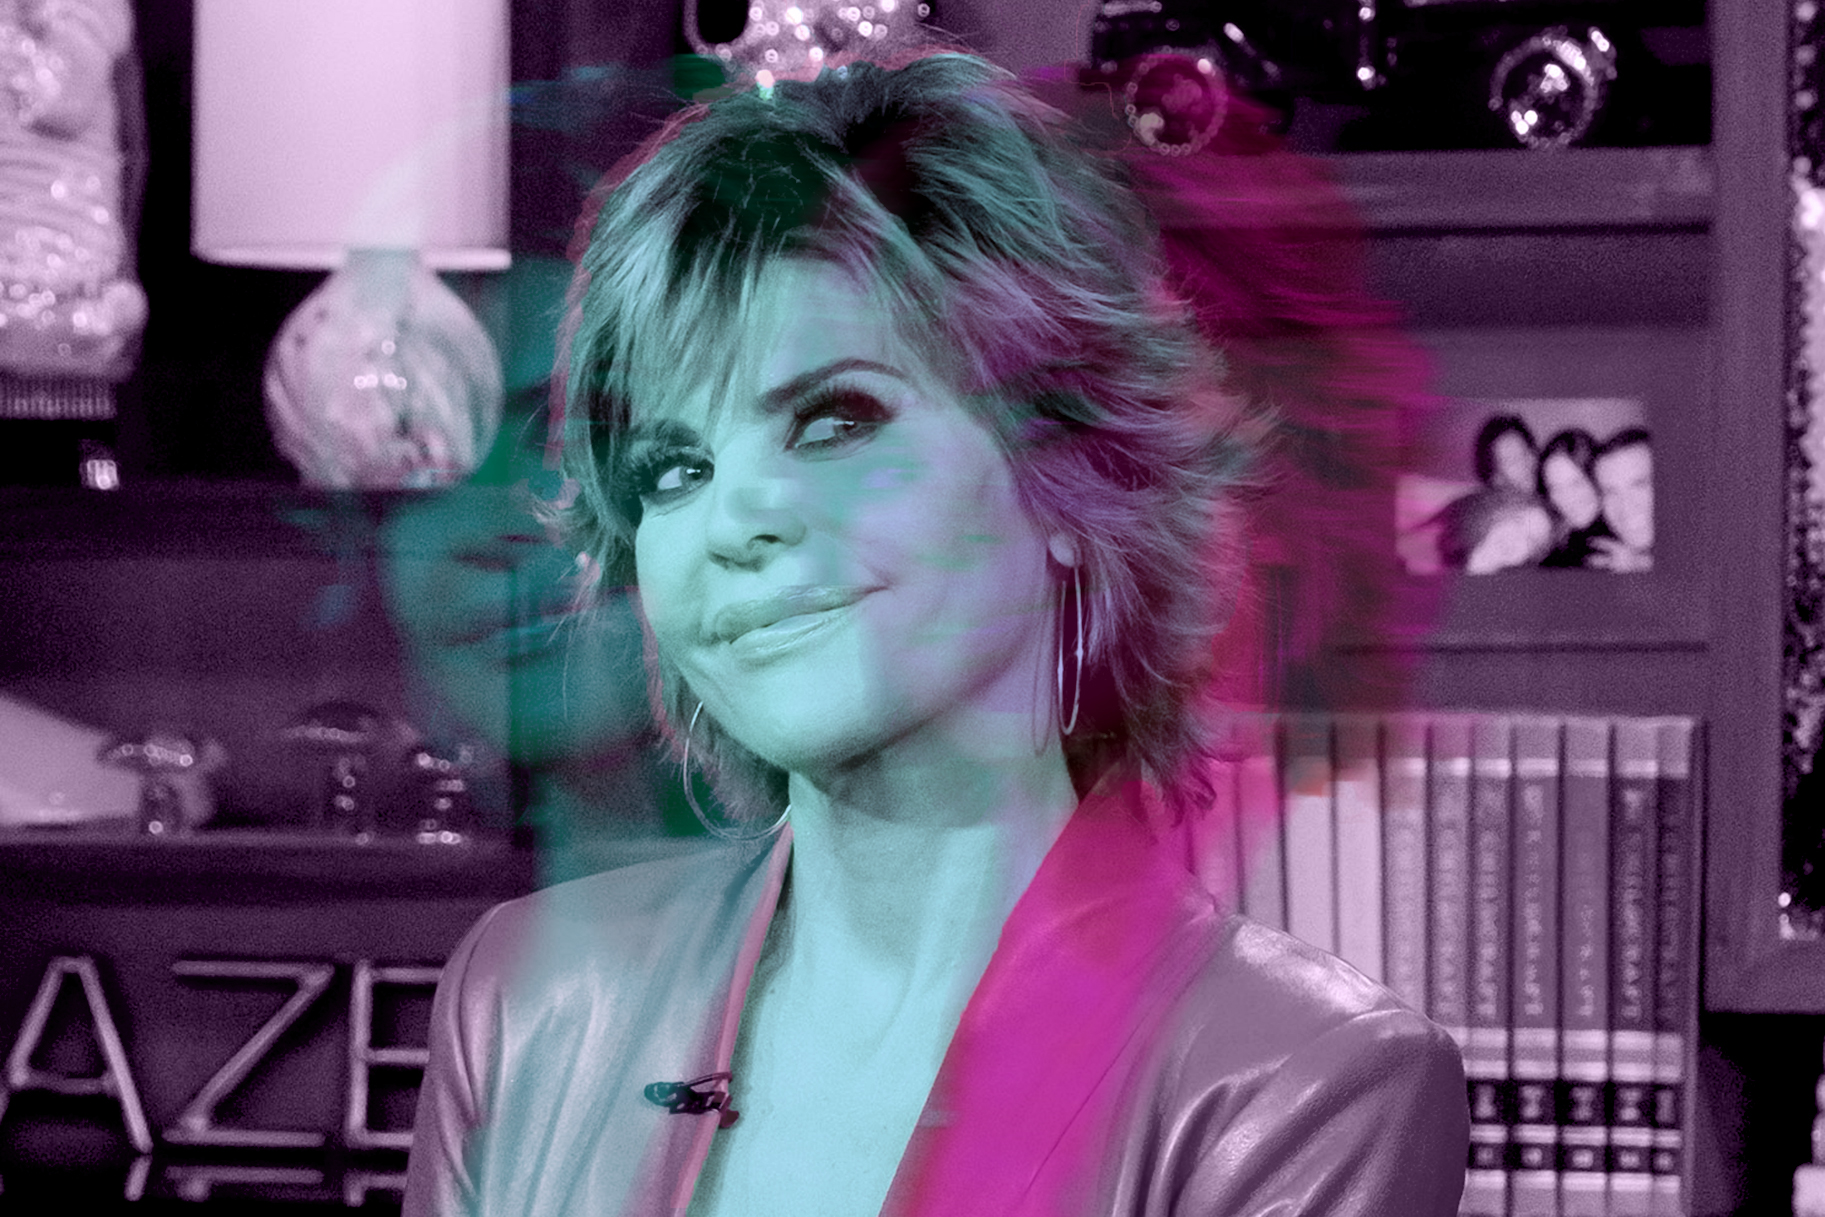 Lisa Rinna Had to List an Occupation on Her Passport, So She Chose This